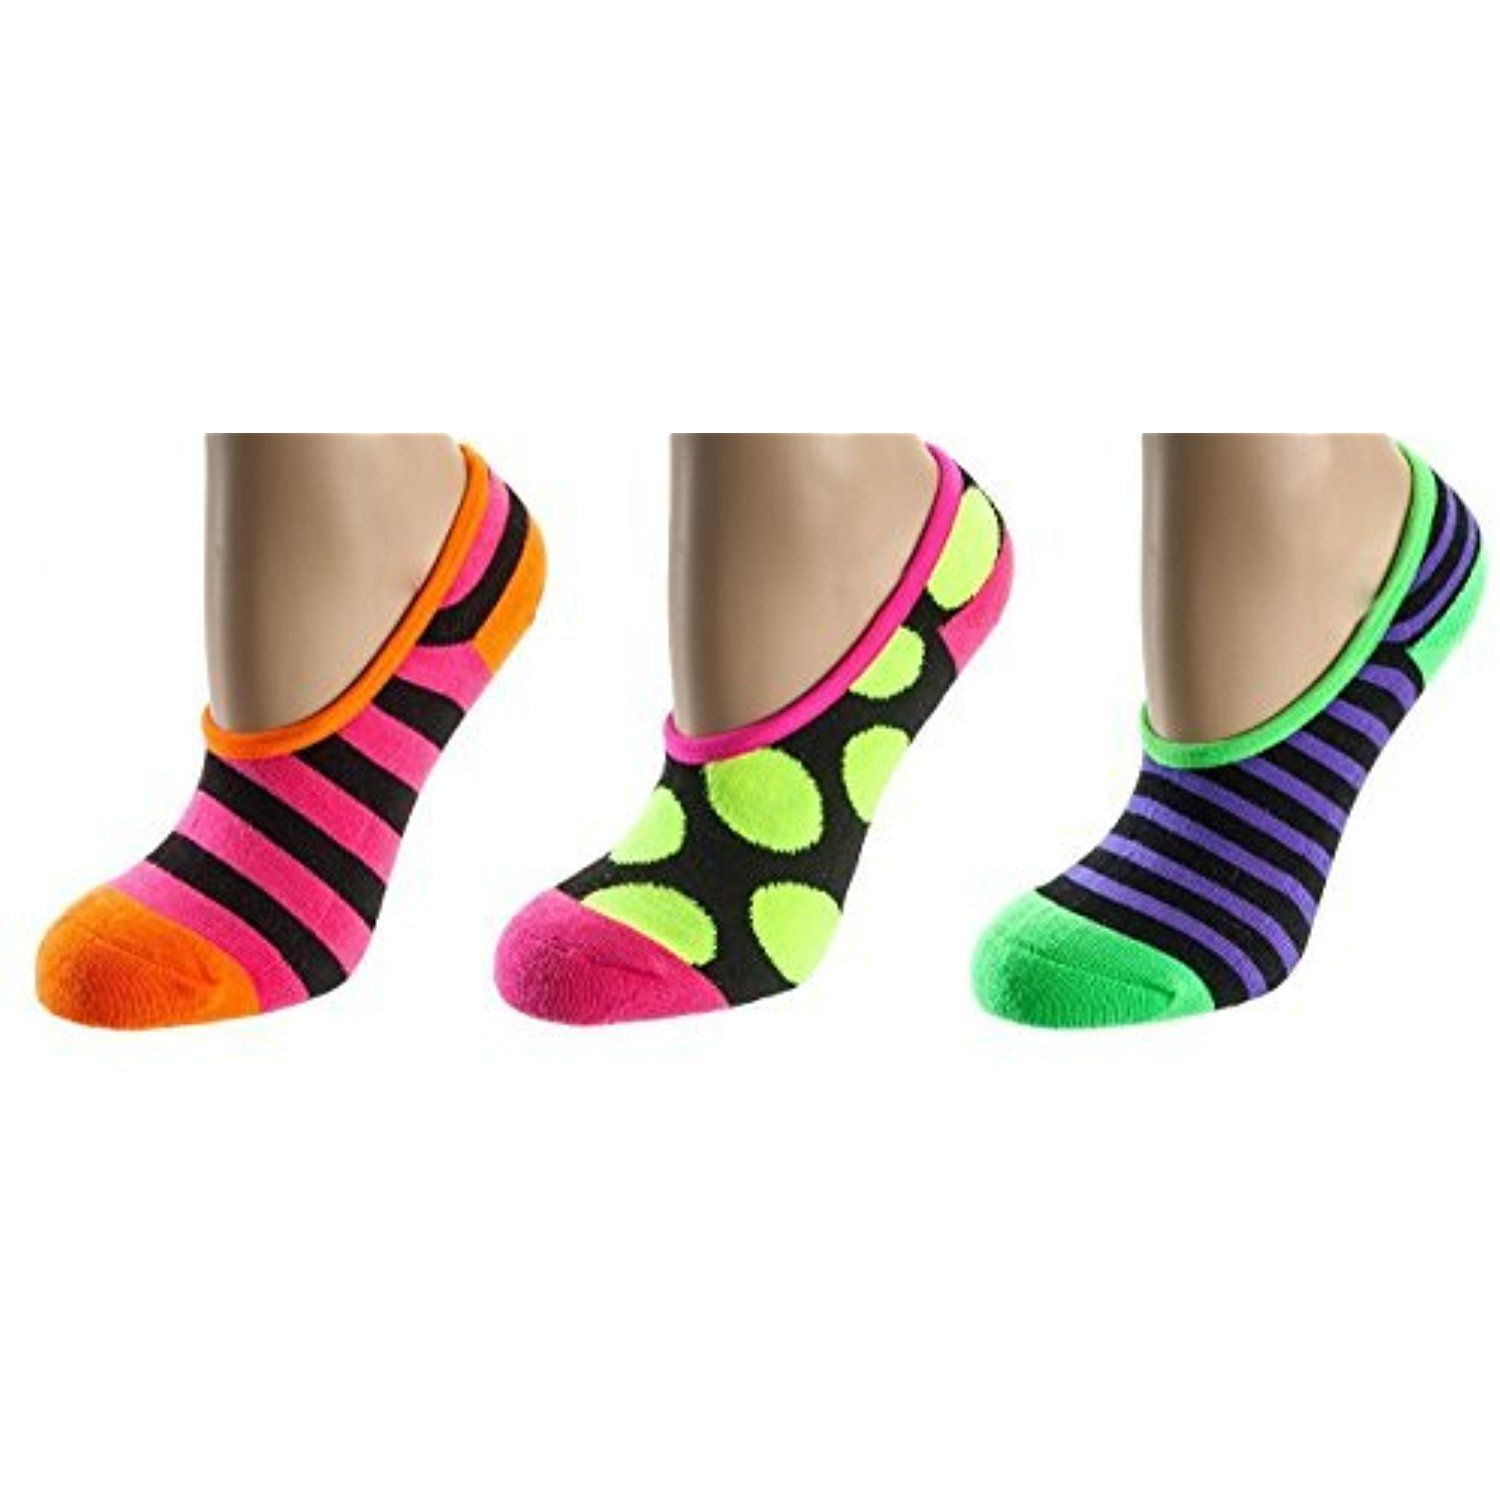 Women S Acrylic Thick No Show Socks Non Slip Silicone Grip Cushion Hidden Foot Liners Visit The Image Link More Details This Is No Show Socks Women Socks